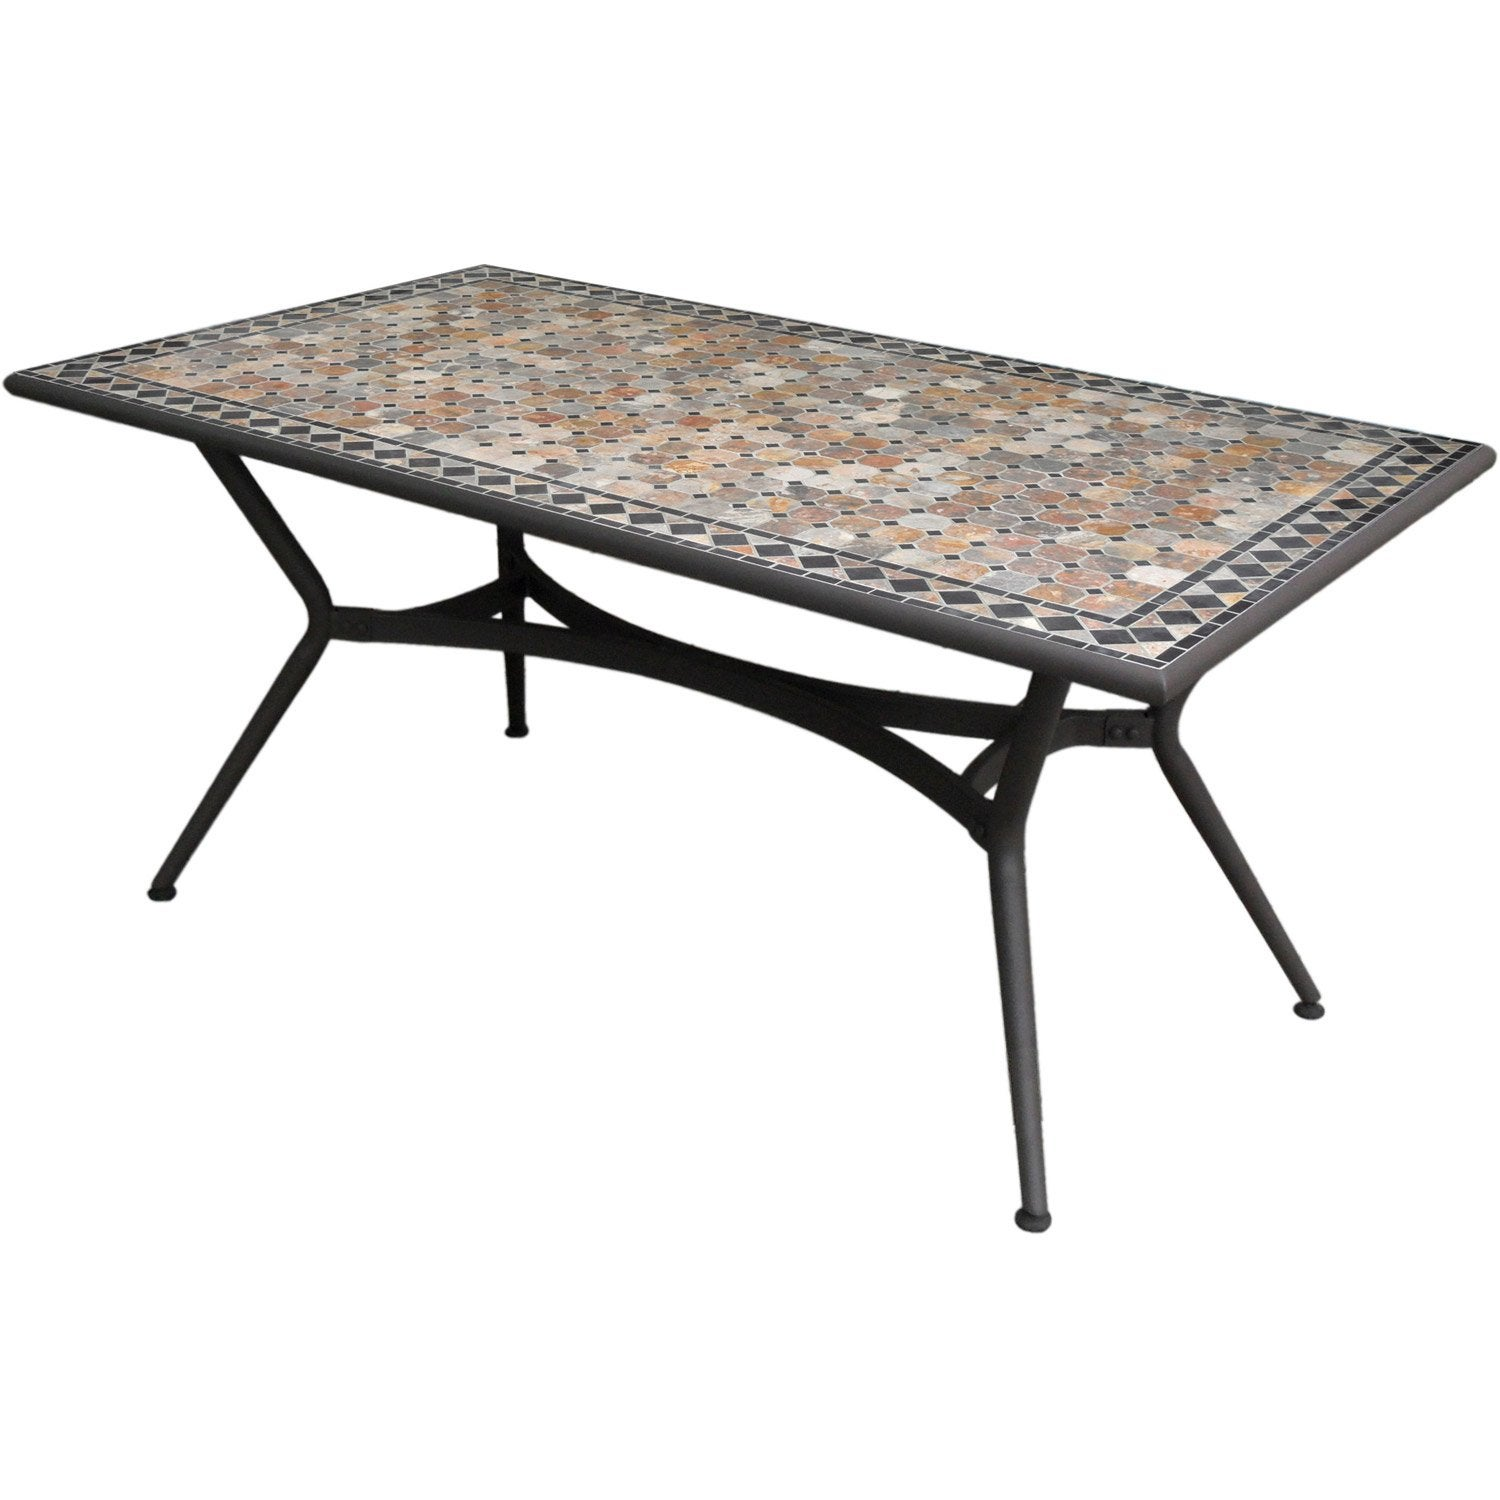 attrayant Table de jardin Marocco rectangulaire anthracite, 6 personnes